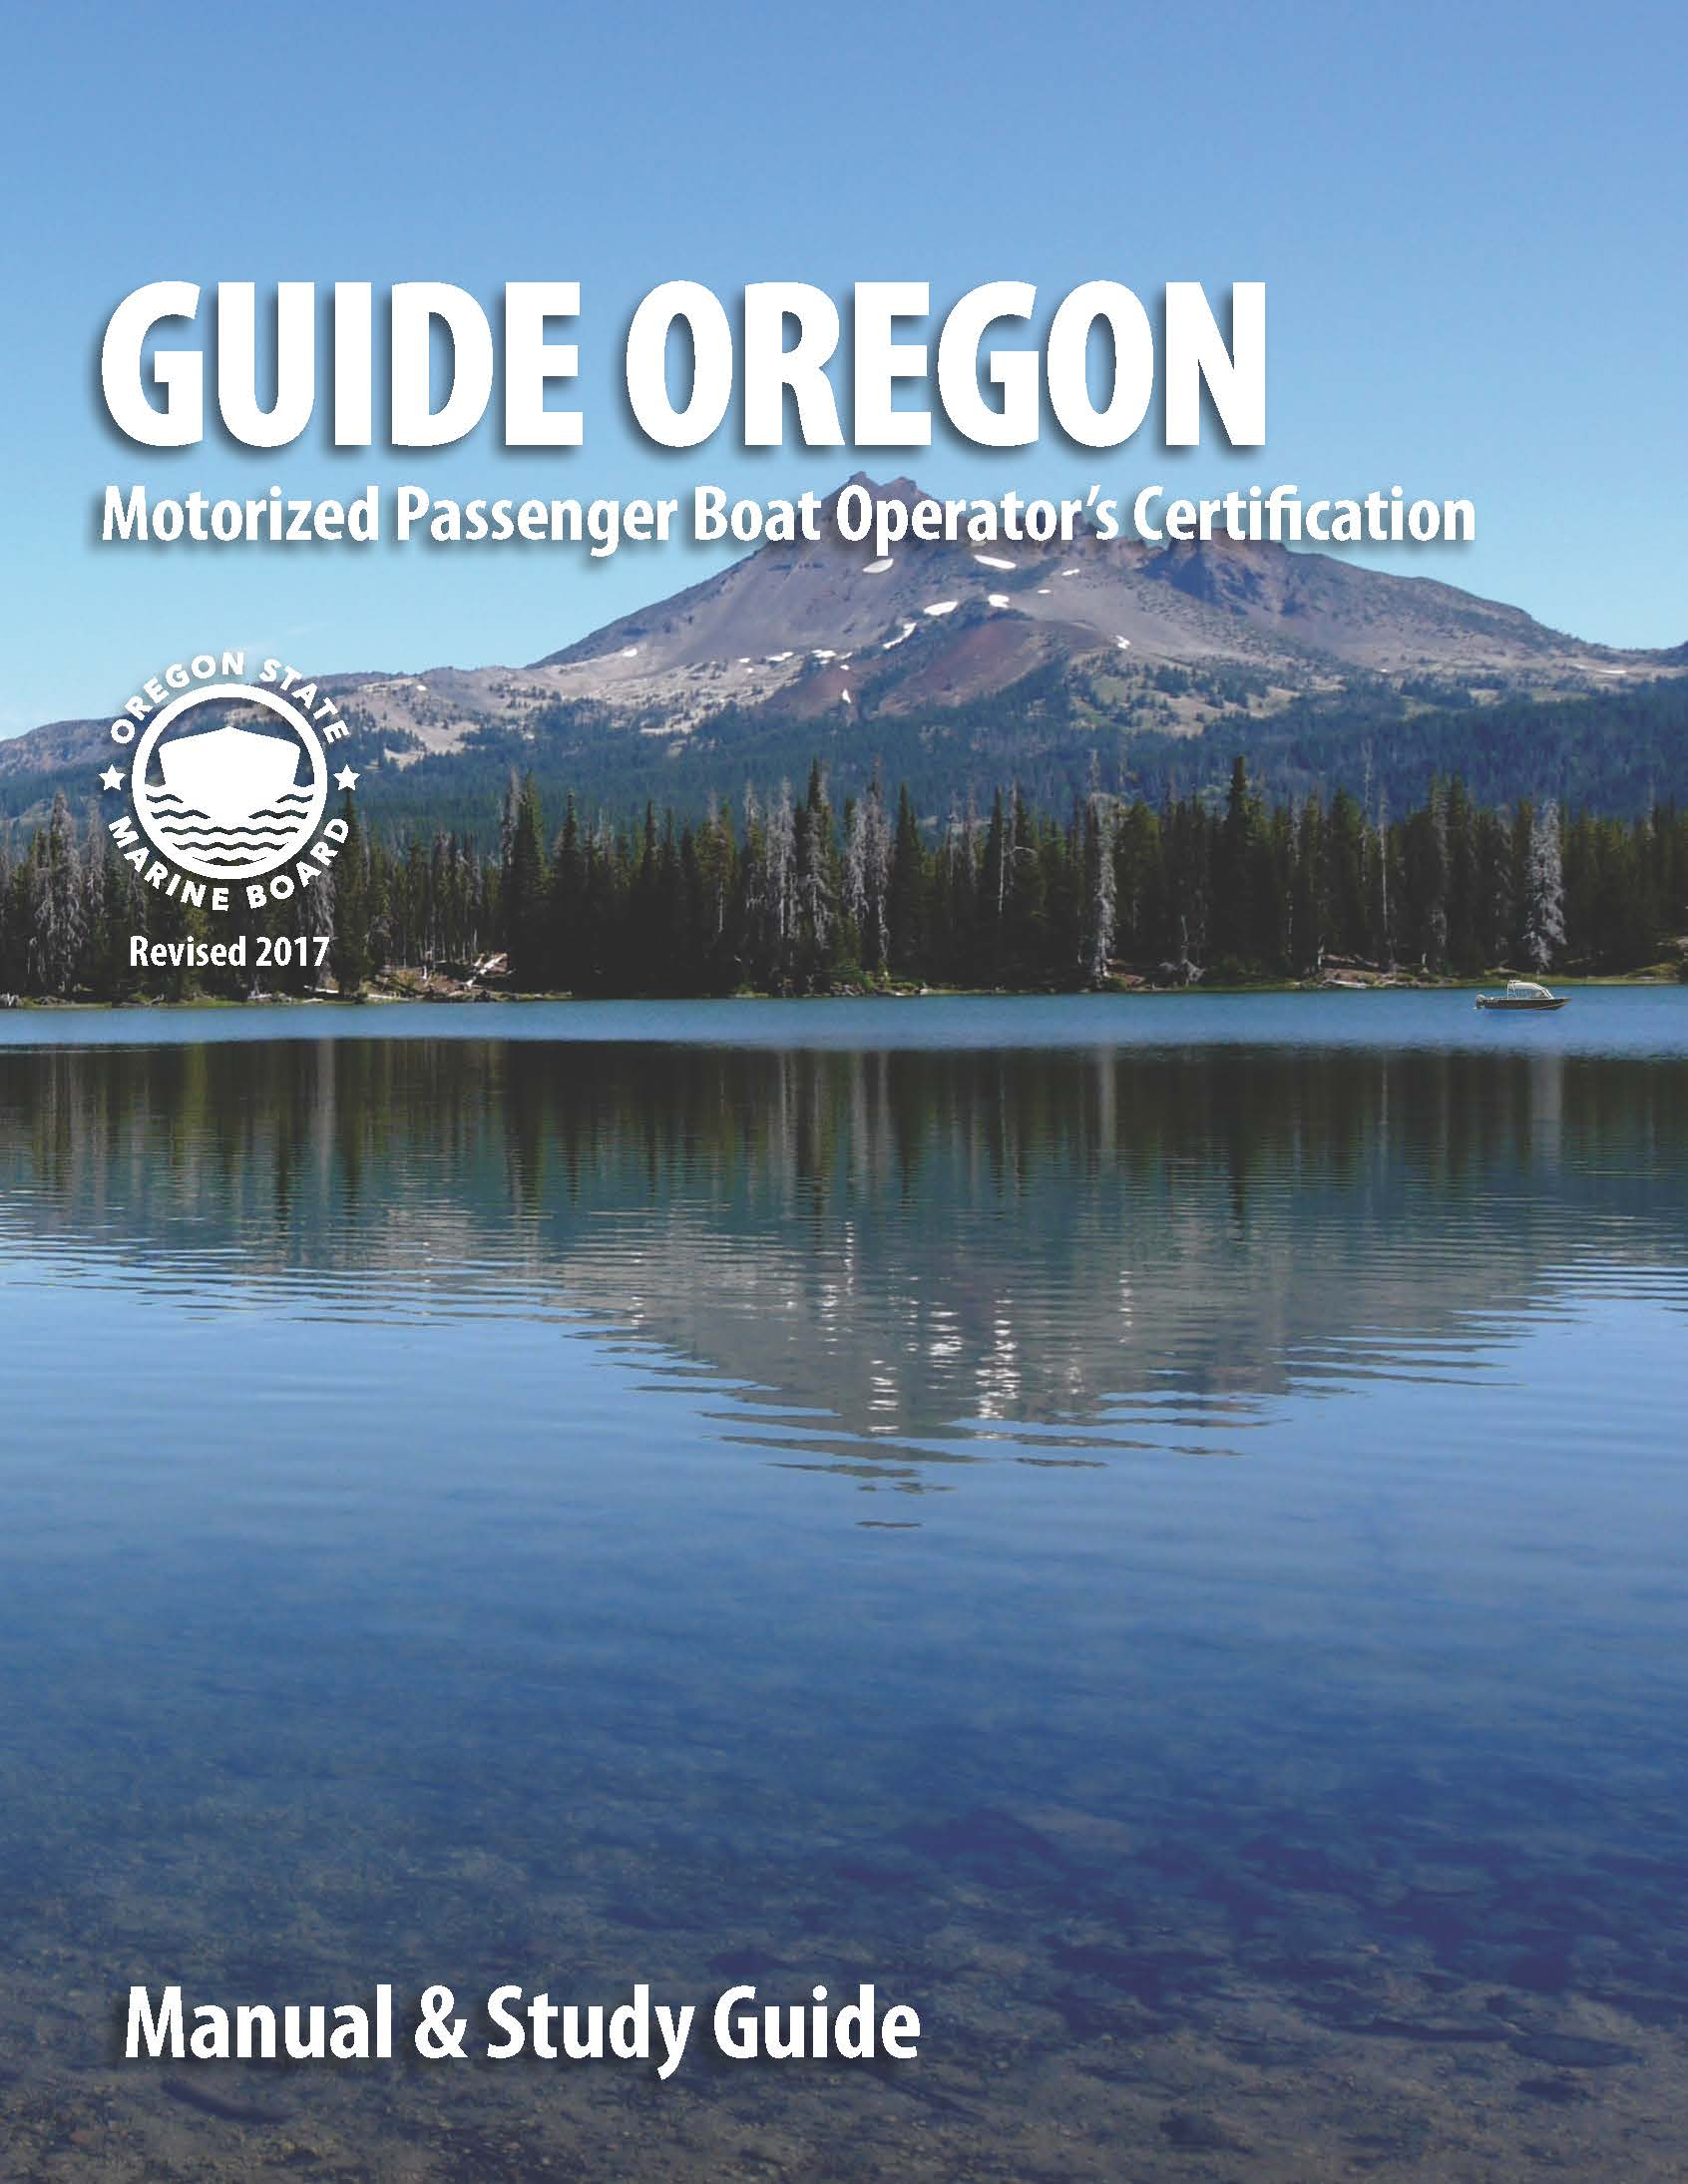 Guide Oregon cover